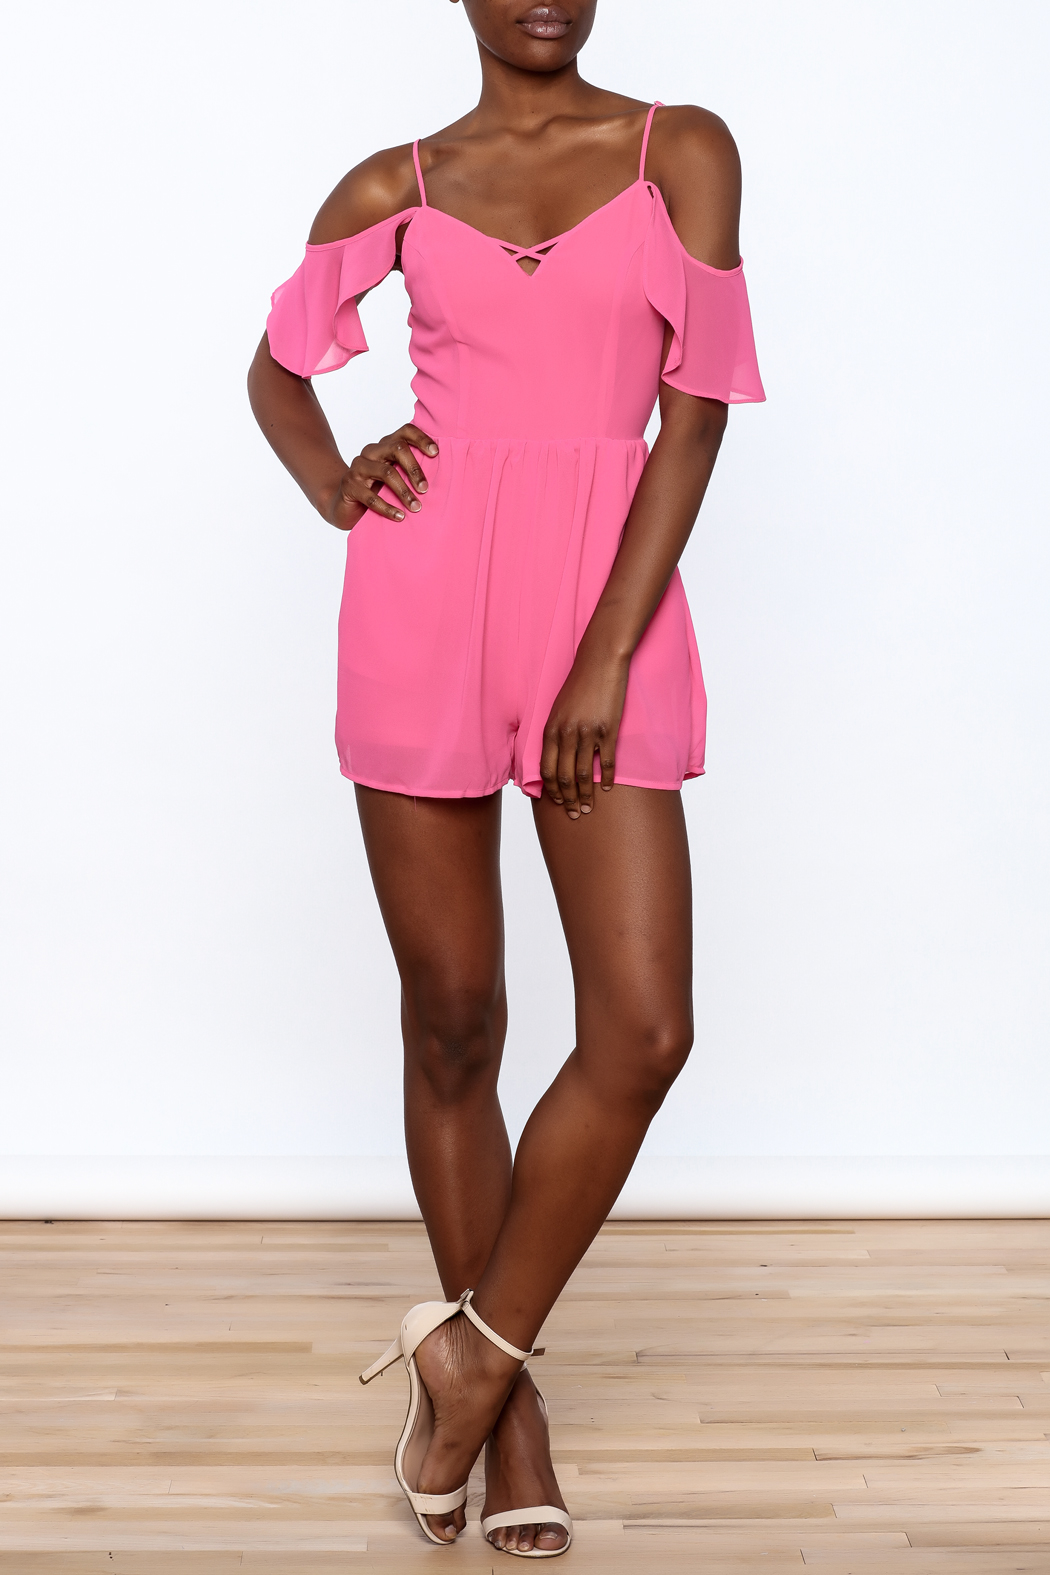 HYFVE Pink Ruffle Romper - Front Full Image